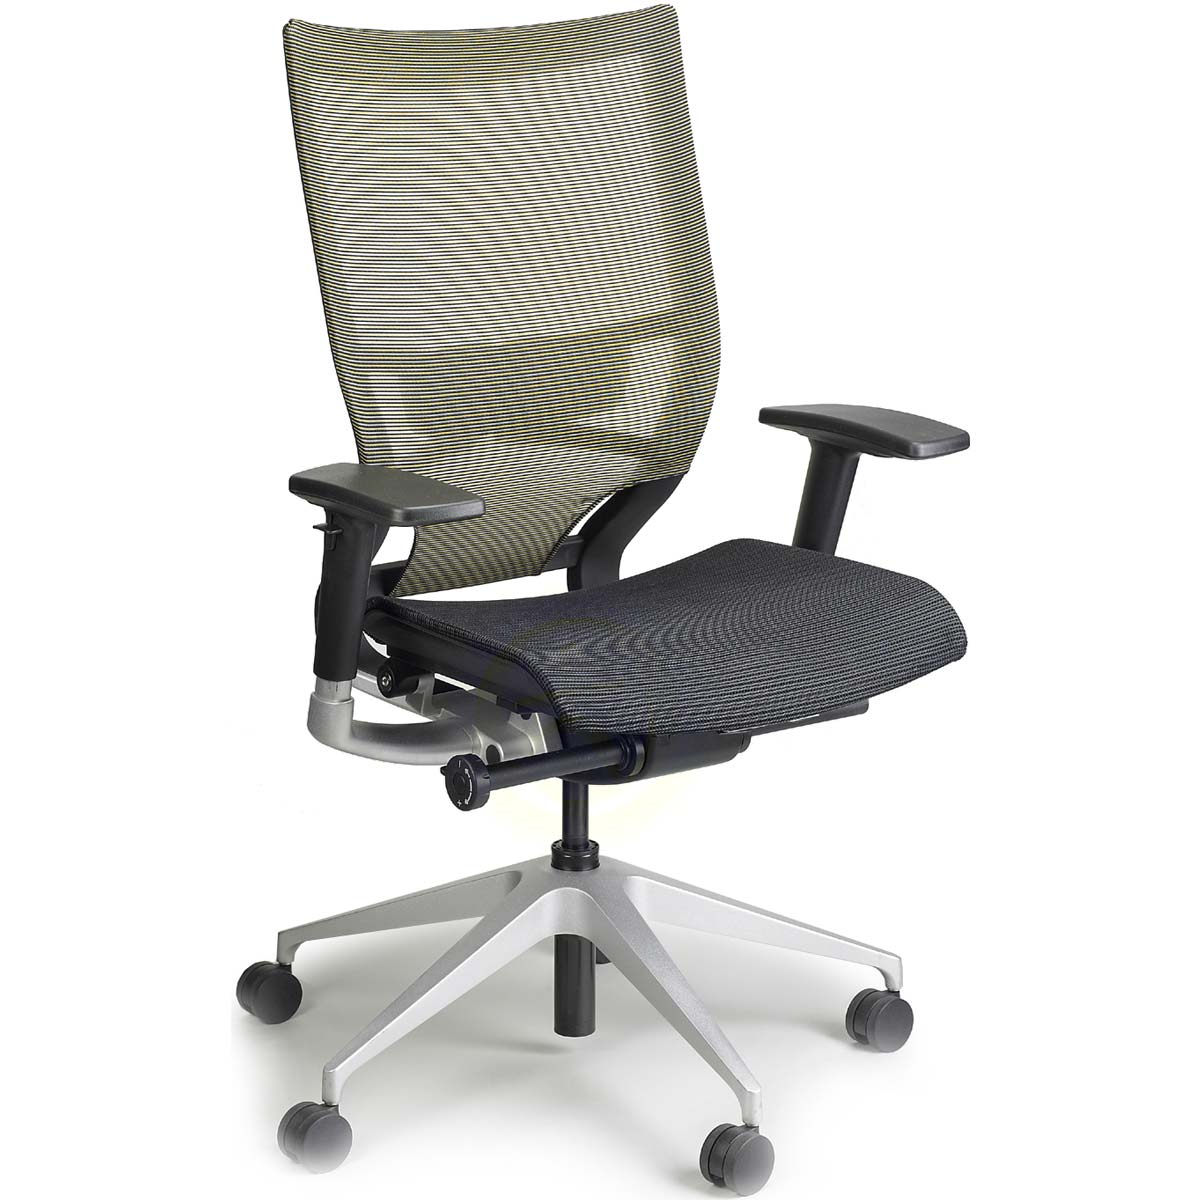 Raynor Chairs Raynor Nuvo Mesh Chair Shop Mesh Chairs